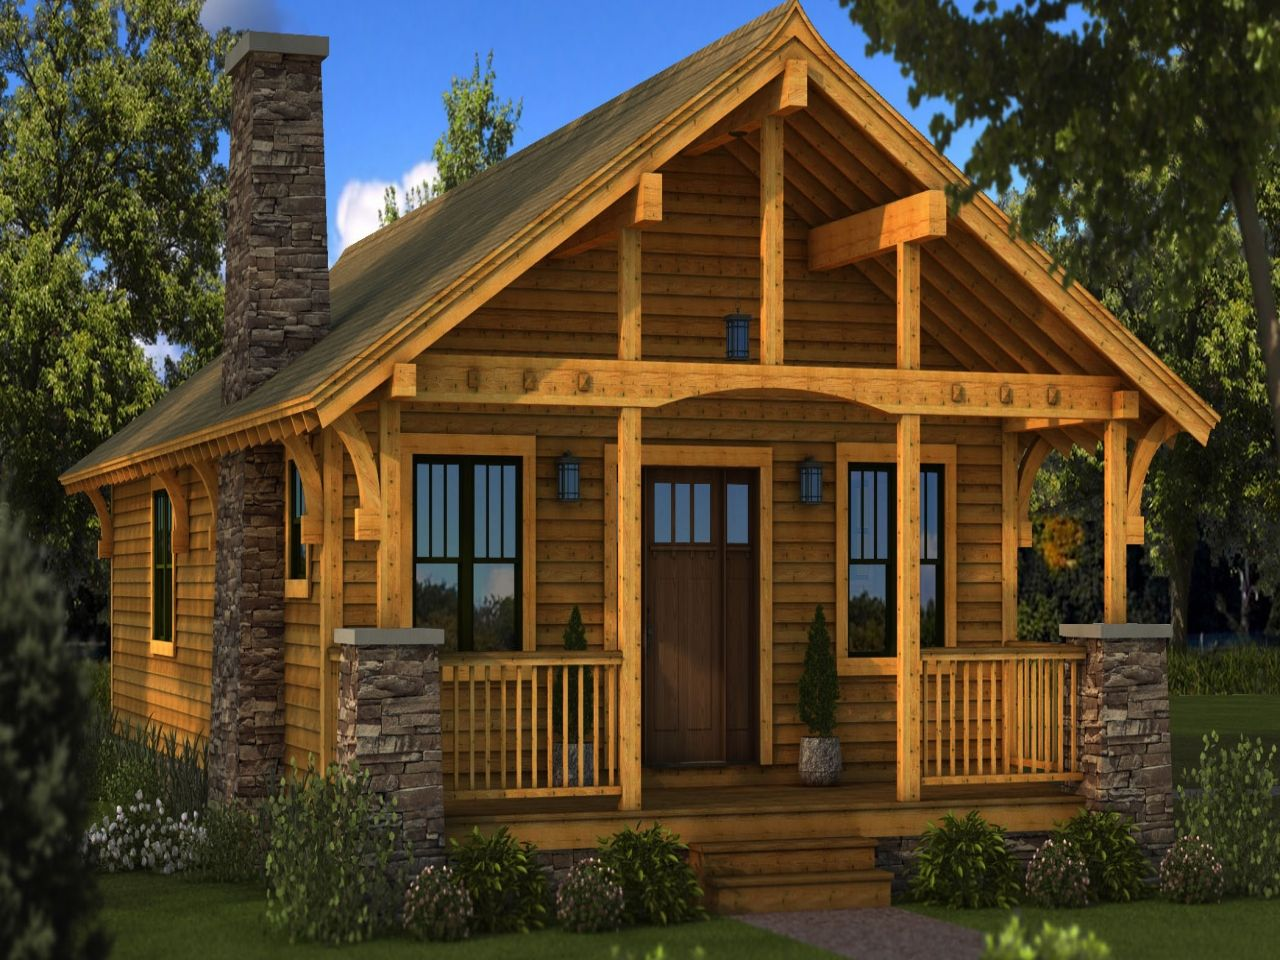 Small log cabin homes plans one story cabin plans for Tiny house cabin plans